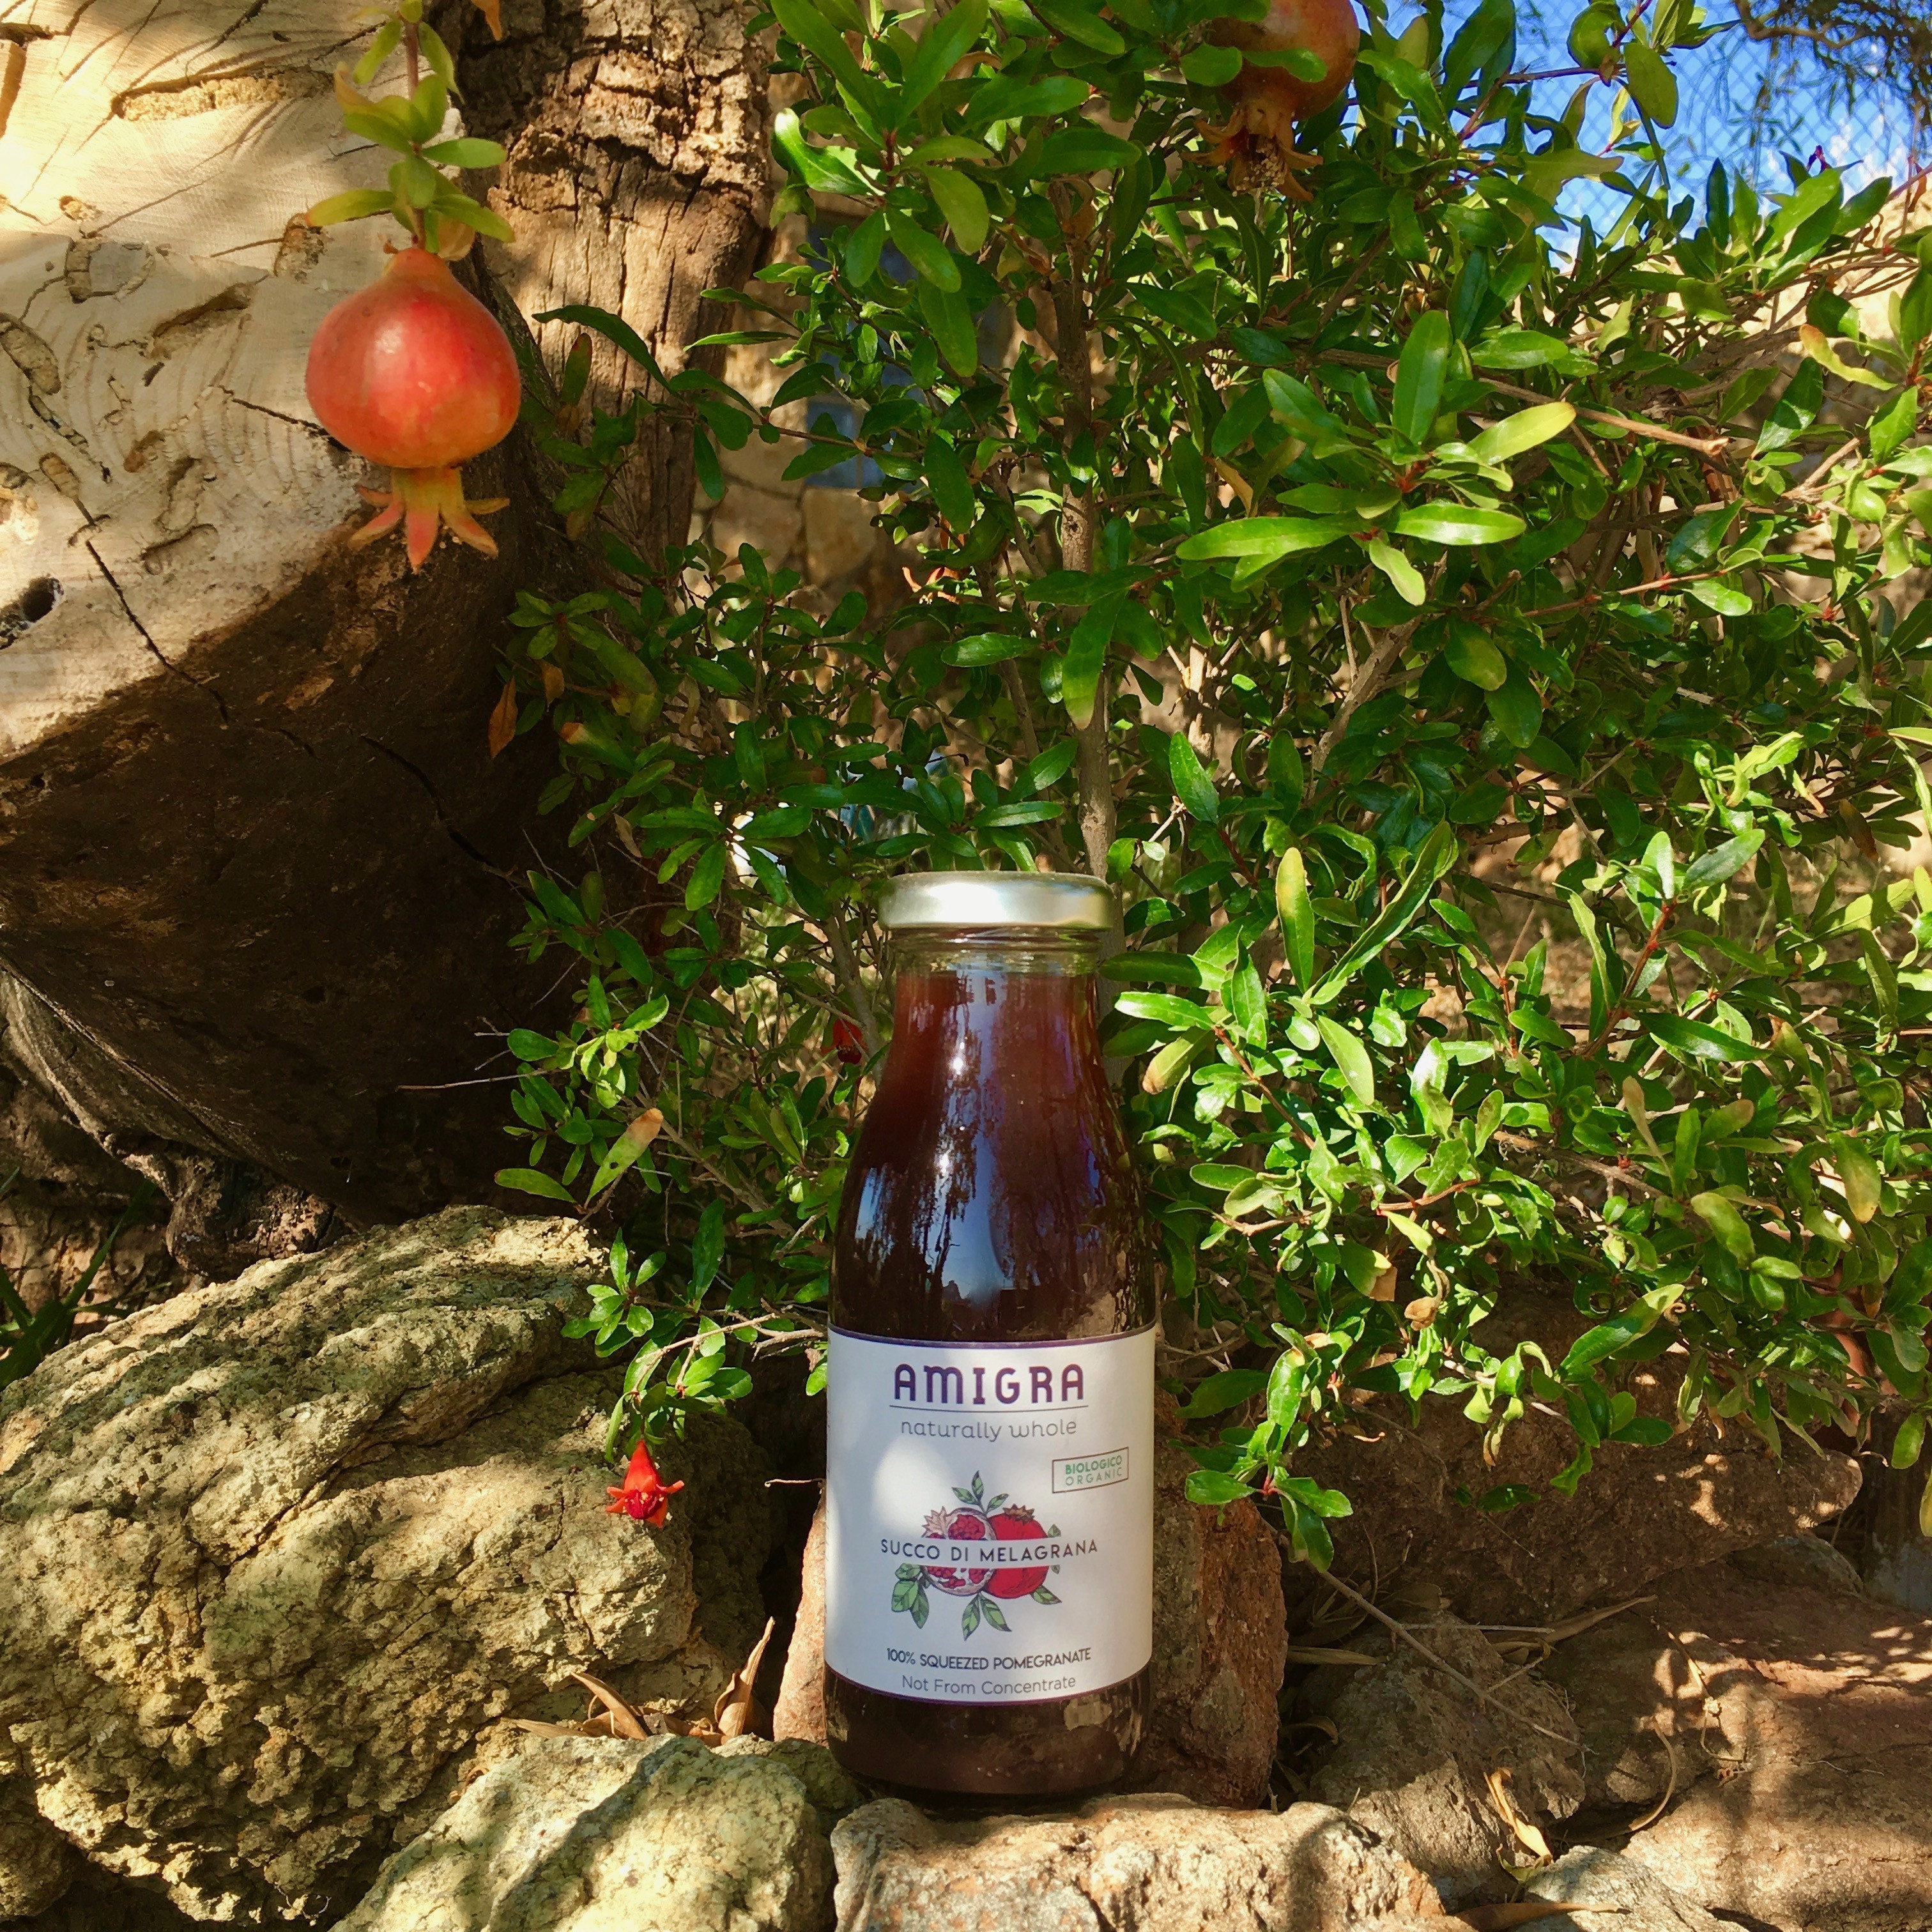 Bio pomegranate juice: discover the organic world of Amigra.